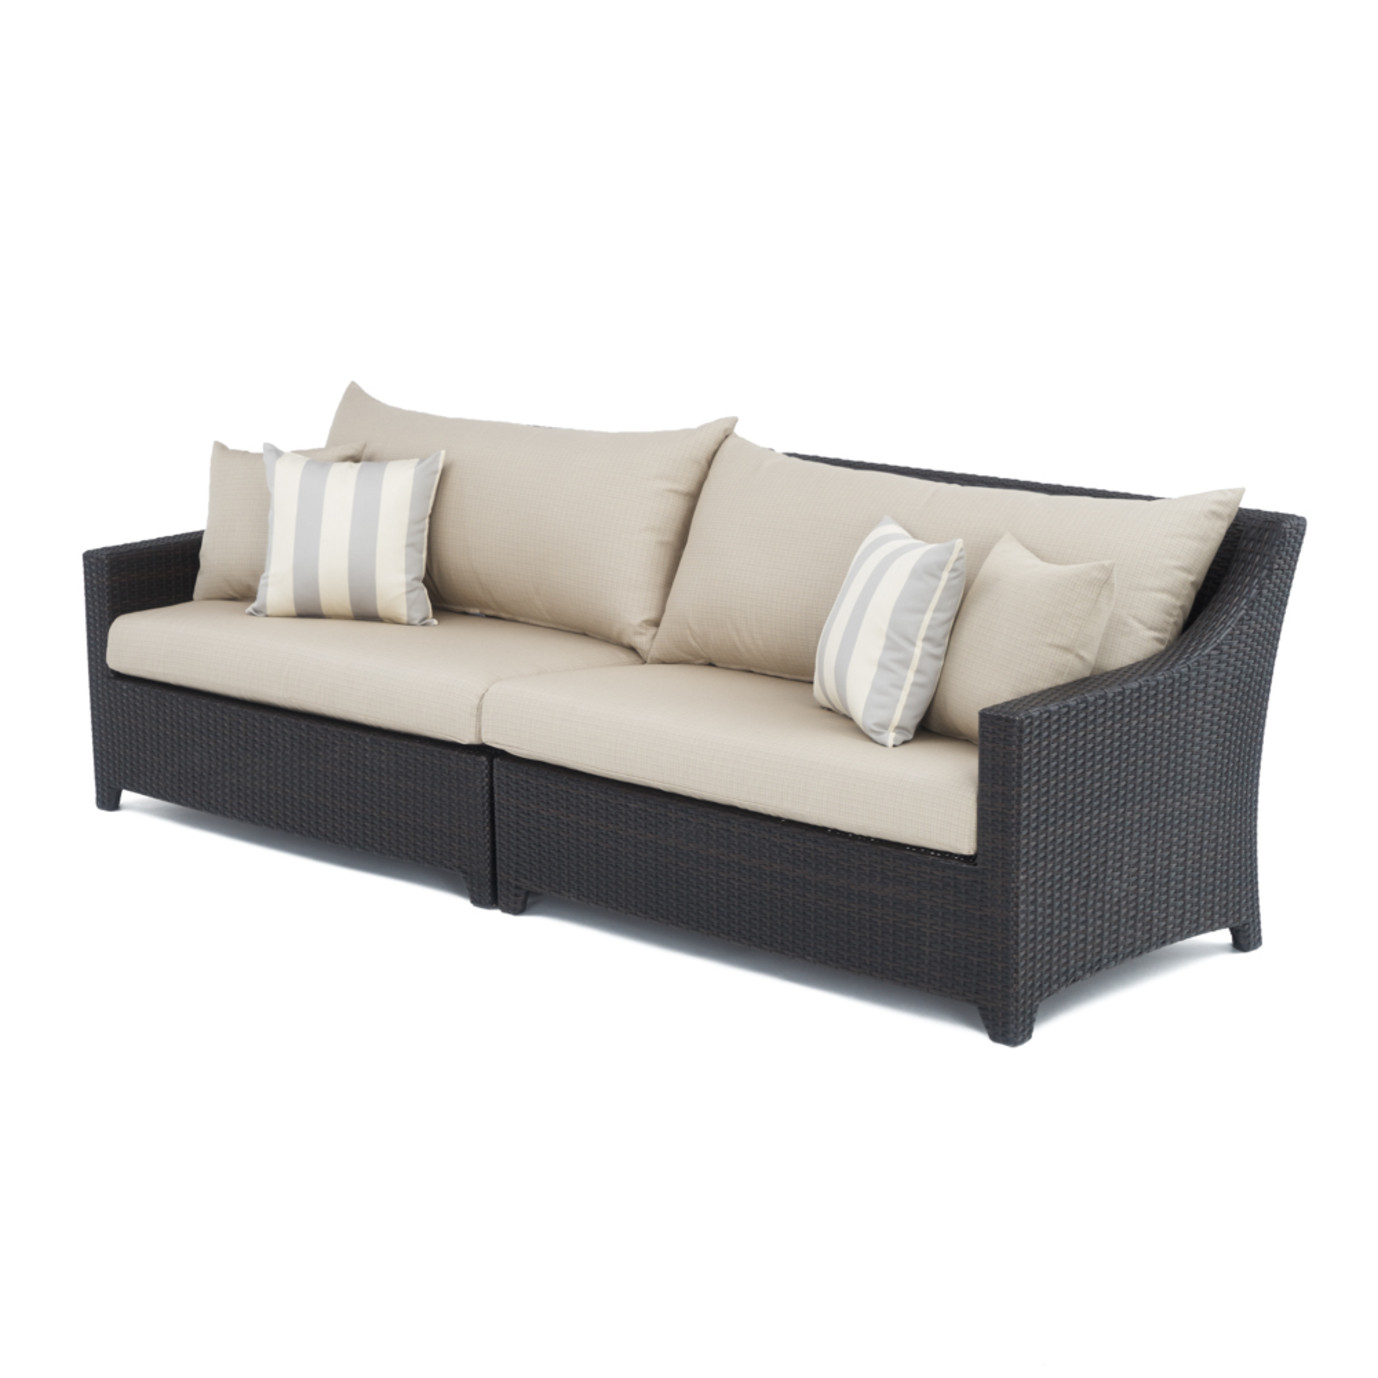 Deco™ Sofa - Slate Grey